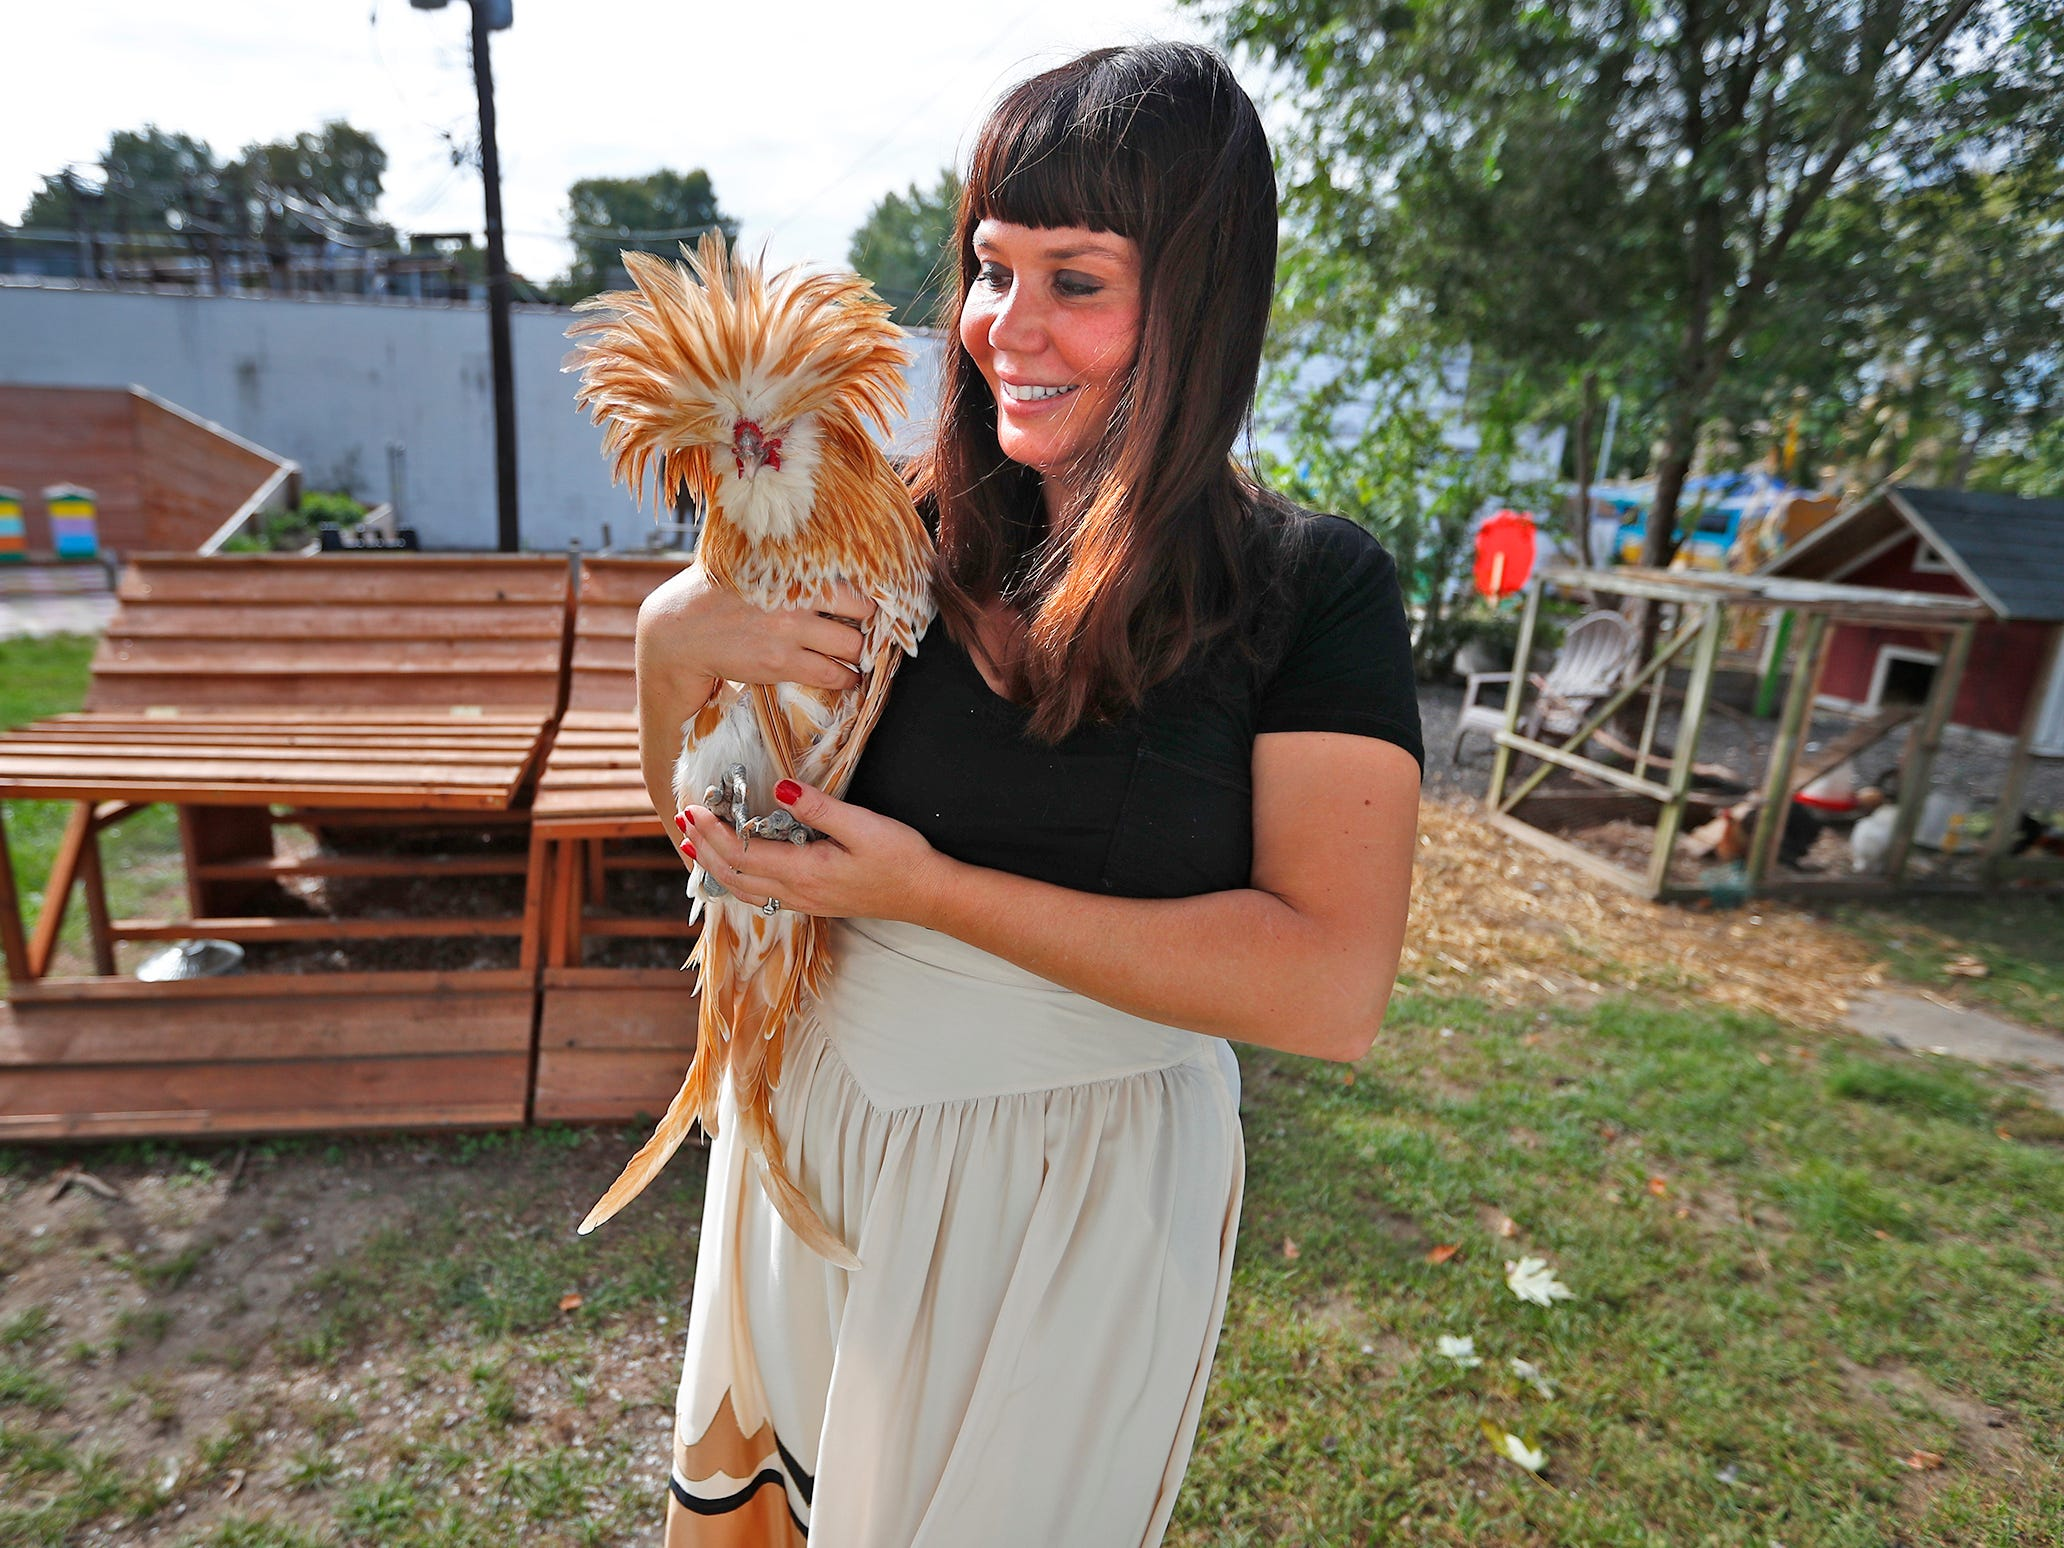 Shauta Marsh holds a Silkie, Tuesday, Oct. 9, 2018, at the site where the new Chicken Chapel of Love will be built.  The Vegas-style wedding chapel in the backyard of the Tube Factory Artspace will be complete with chickens.  You can bring your own minister or ask one of the ordained Big Car staff to officiate.  The chapel also will be a meditation center that connect the art world to the earth.  Also on the site are a bee sanctuary, raised gardens, and chicken coops.